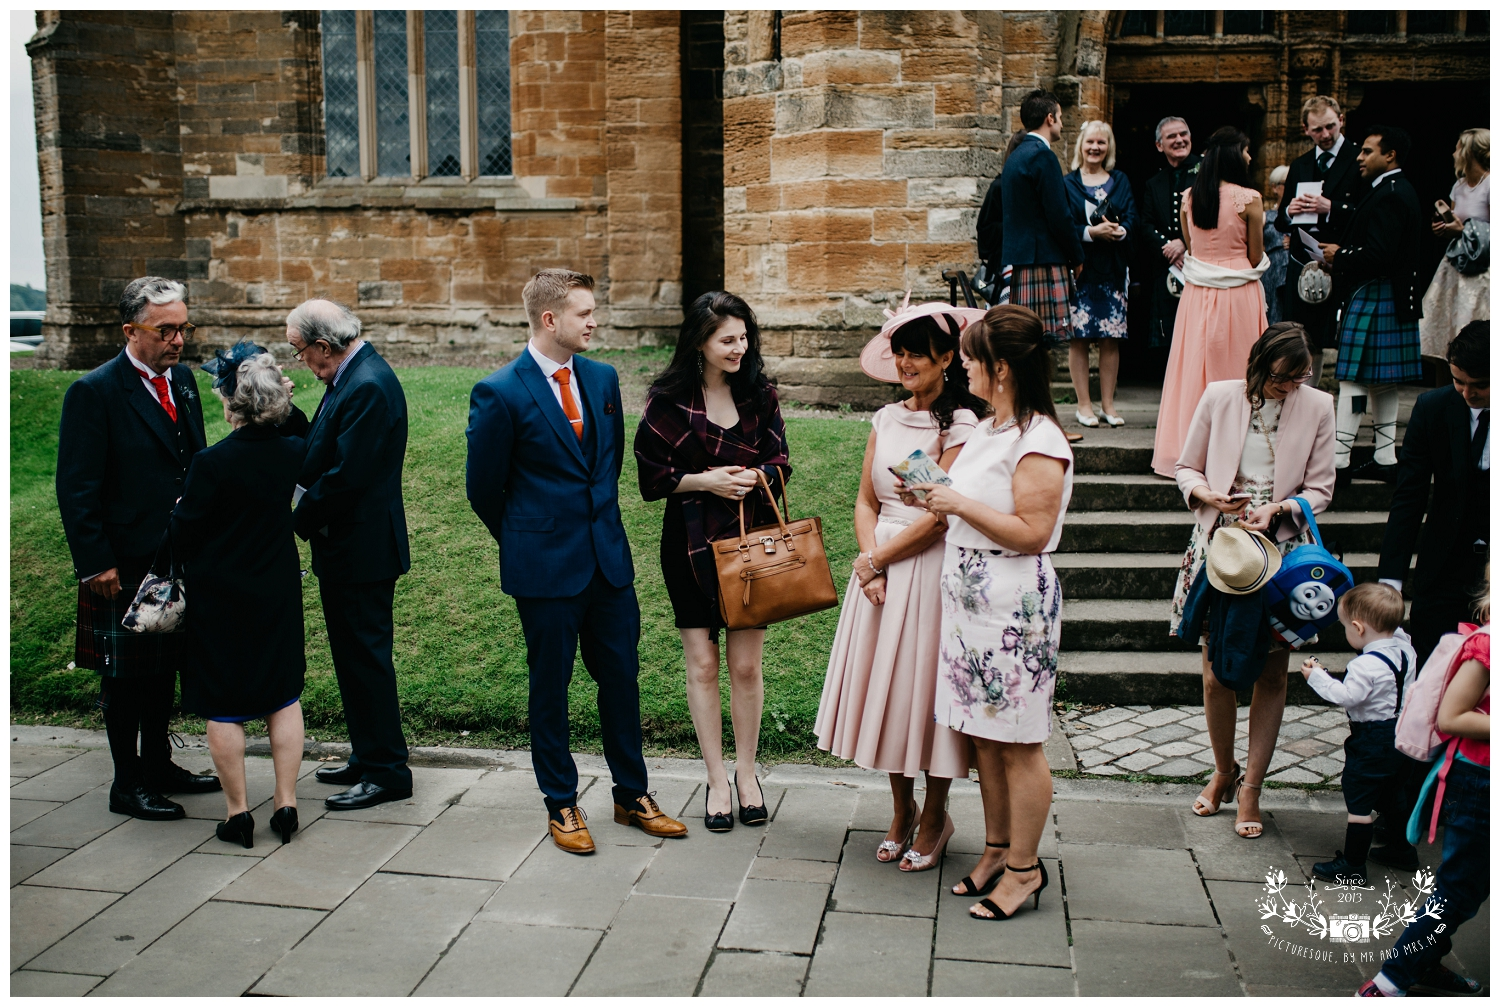 St Michael's Linlithgow and Carlowrie Castle Wedding, Scottish wedding photography, Picturesque by Mr and Mrs M_0026.jpg